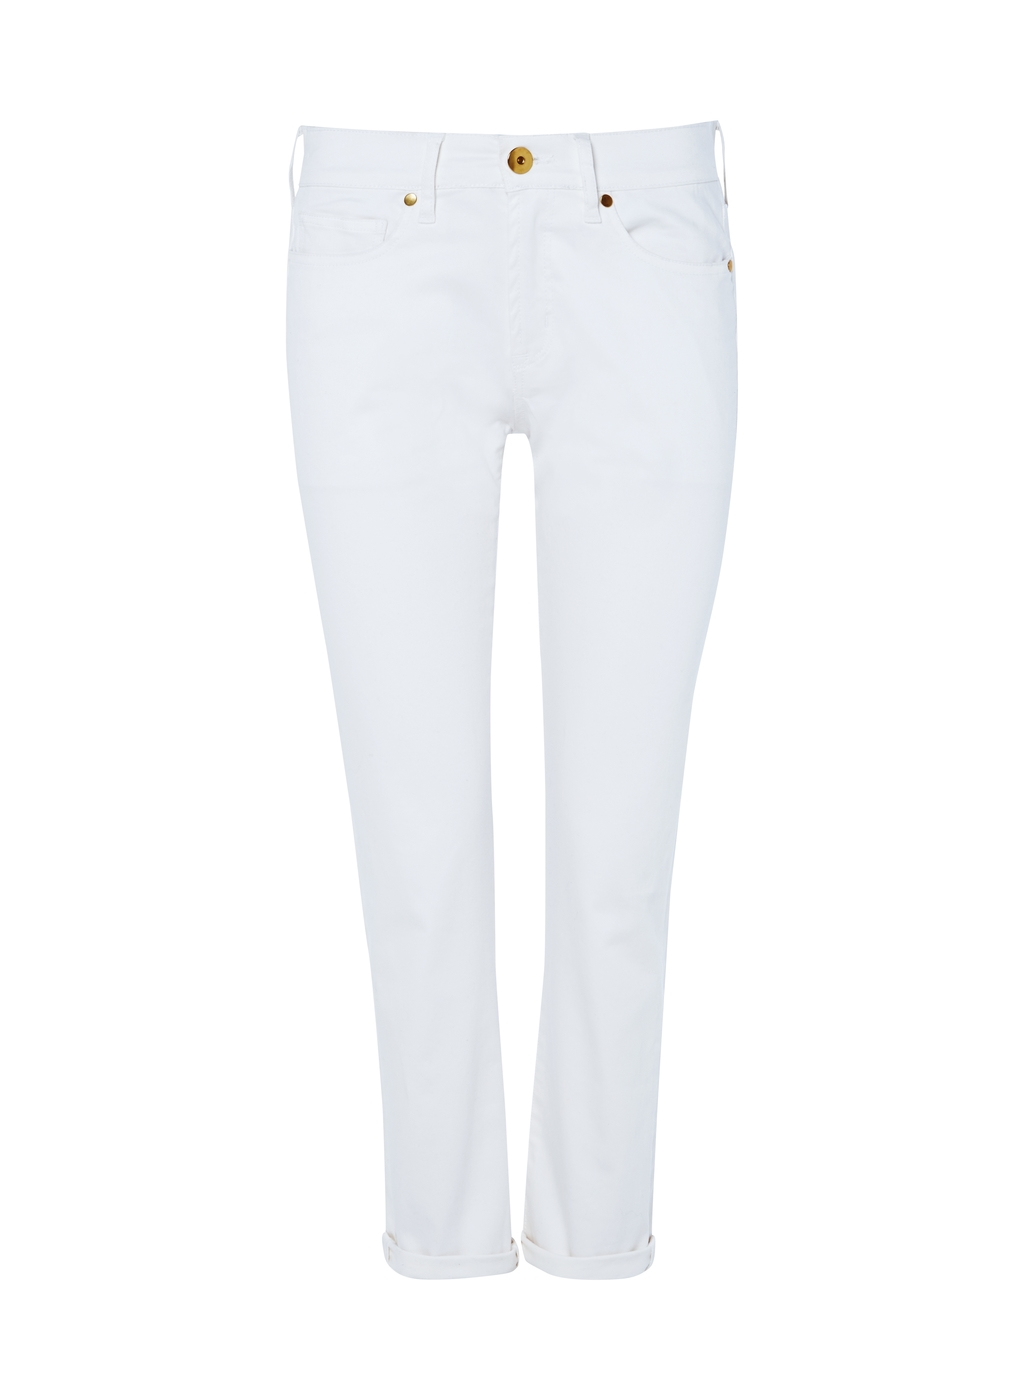 Womenswear Boyfriend Jean - style: boyfriend; length: standard; pattern: plain; pocket detail: traditional 5 pocket; waist: mid/regular rise; predominant colour: white; occasions: casual; fibres: cotton - 100%; texture group: denim; pattern type: fabric; season: s/s 2016; wardrobe: highlight